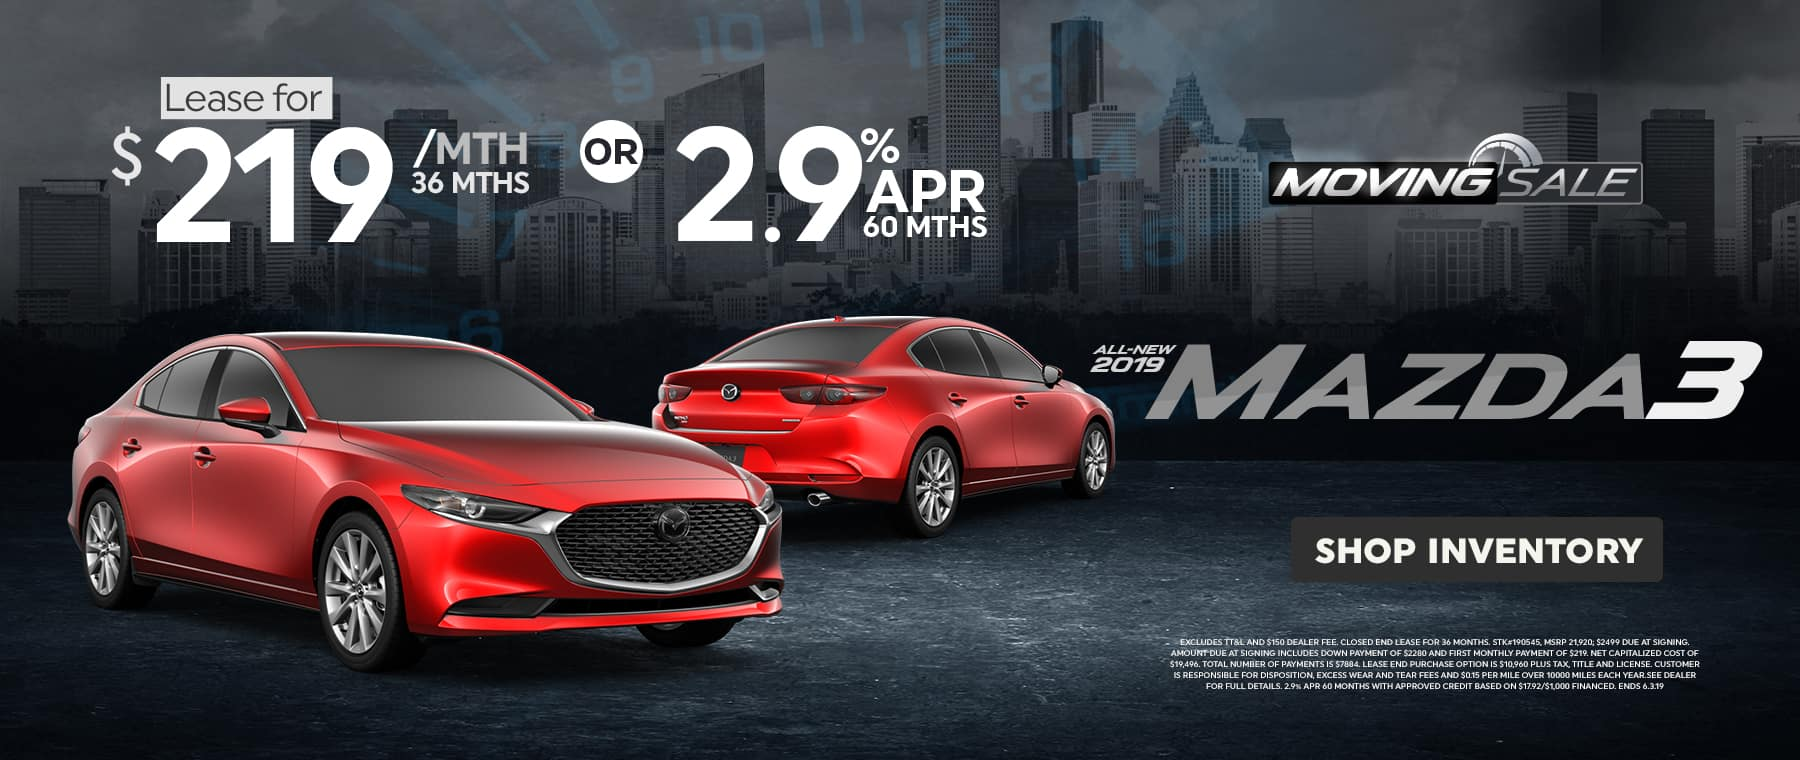 2019 Mazda3 May 2019 Offer